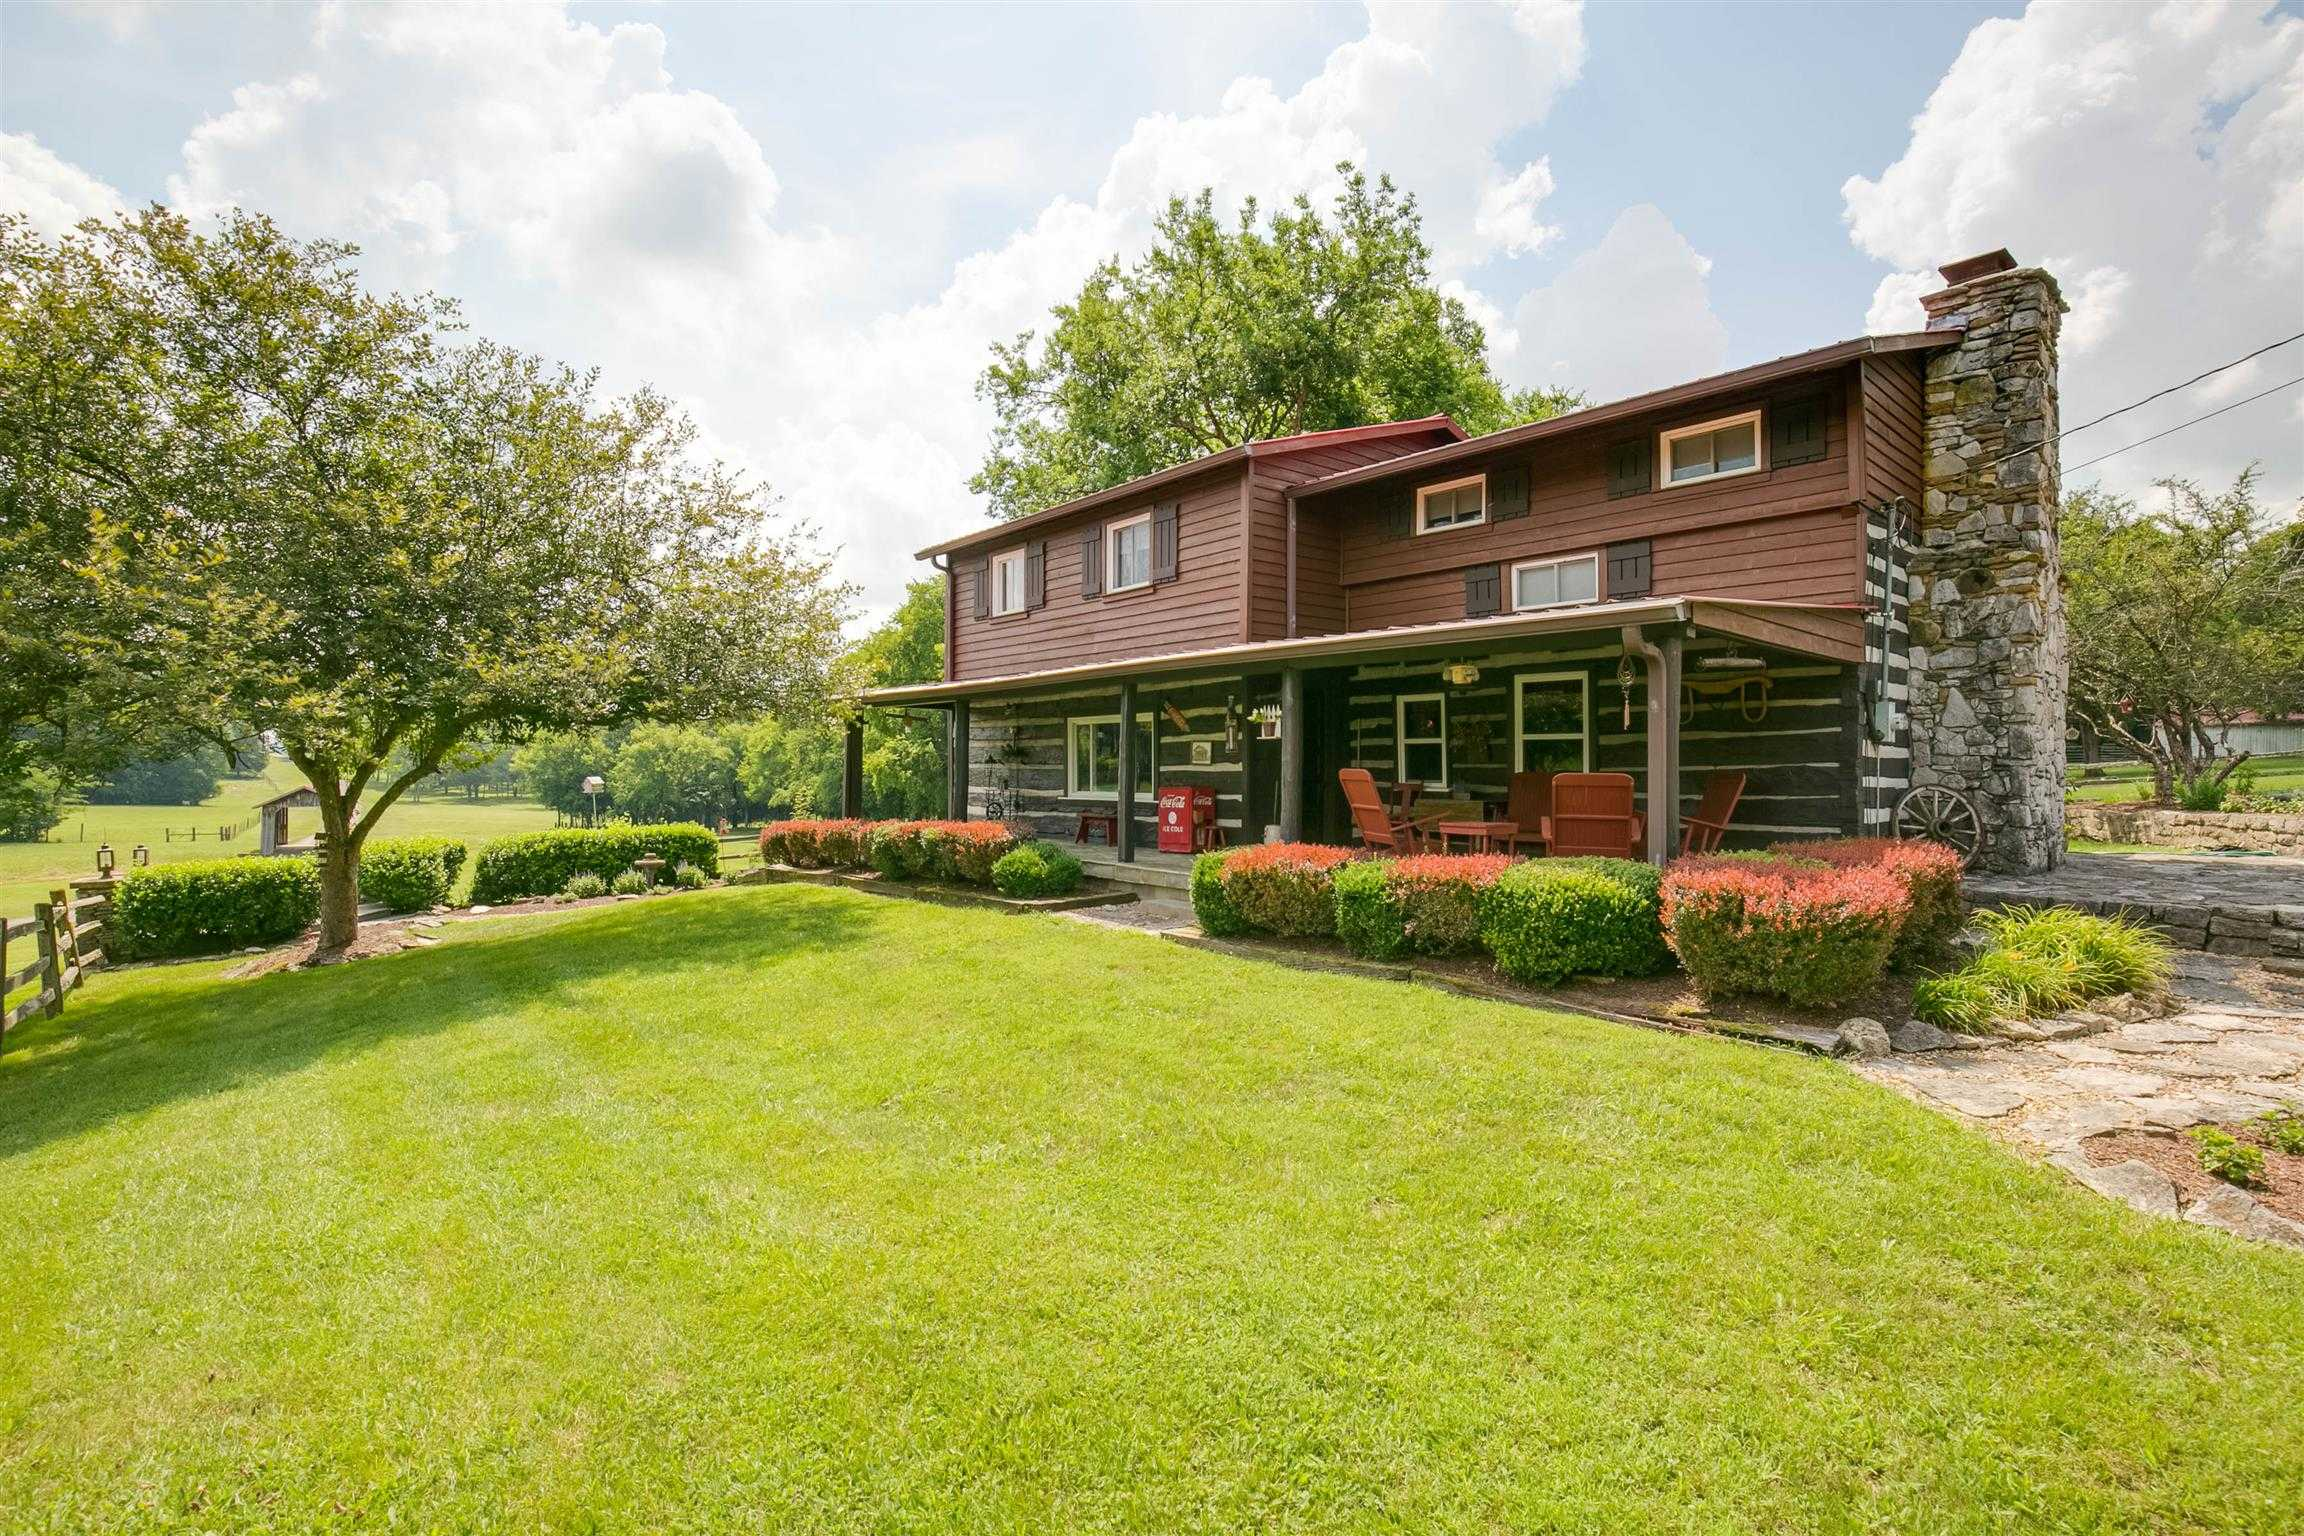 $799,900 - 3Br/3Ba -  for Sale in N/a, Lebanon